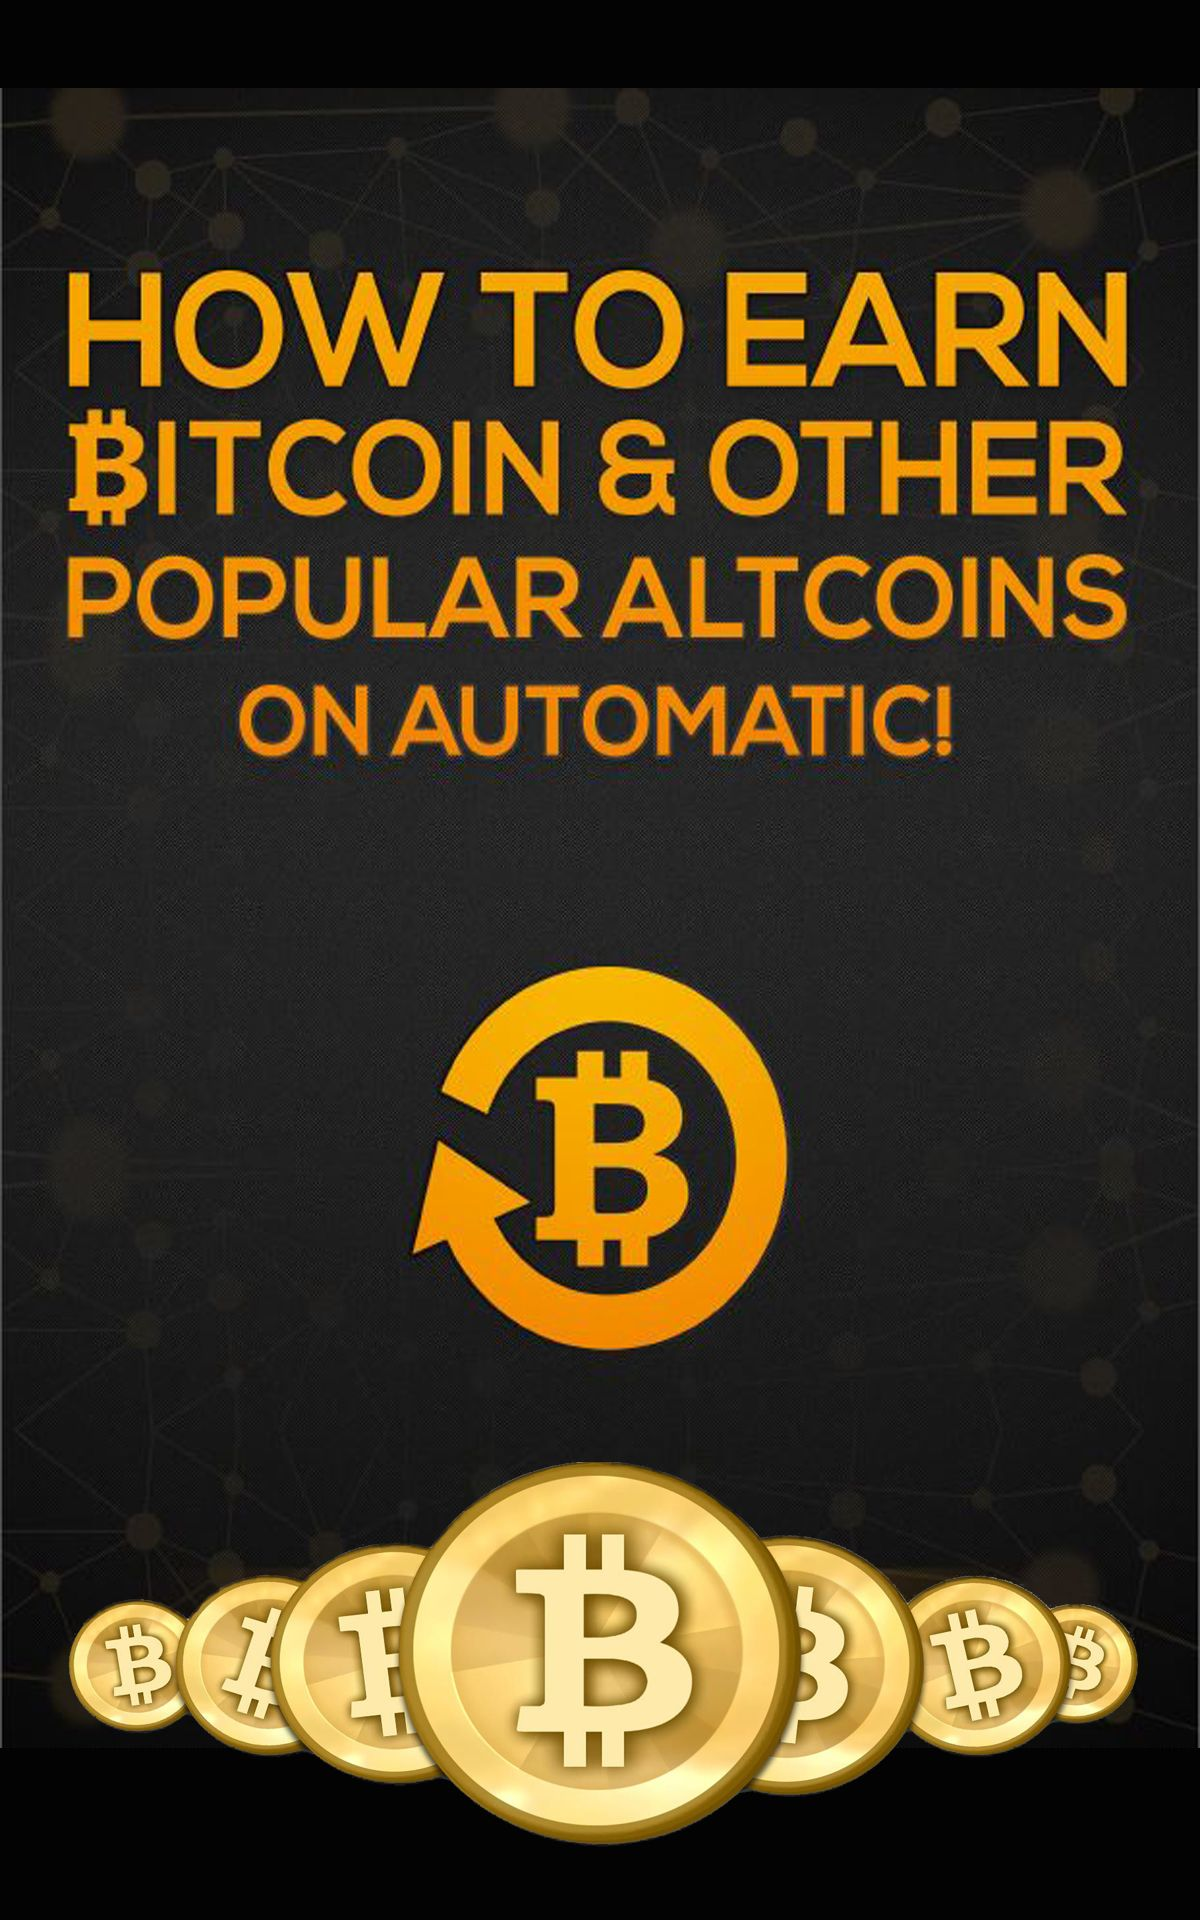 Free Ebook On How To Earn Bitcoin On Automatic Get Your Copy Today -